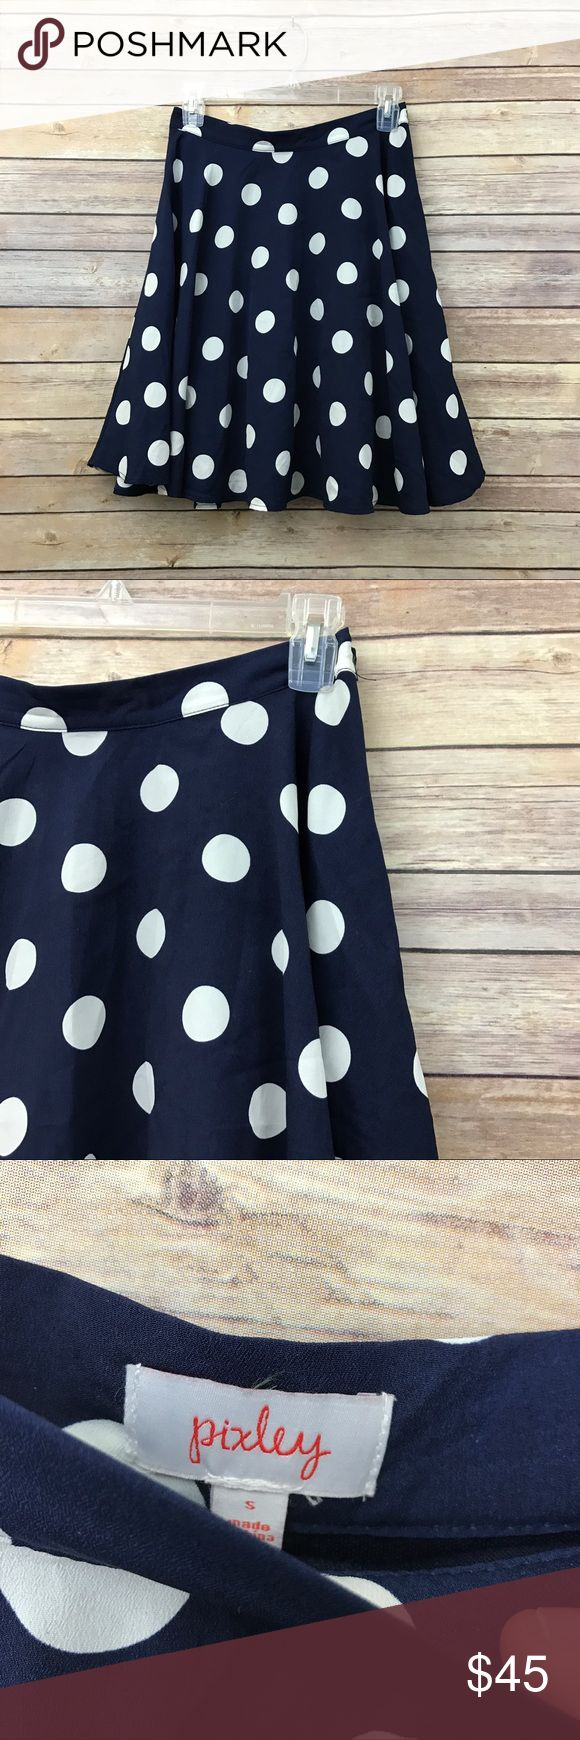 """Pixley Stitch Fix blue & wht polka dot skirt S 55 This super adorable classic navy blue skirt with white polka dots is by Pixley which is a Stitch Fix brand. It is a women's size small and measures 14"""" flat across the waist with a length of 20"""". It is in excellent preowned condition with no known flaws and light overall wear. Pixley Skirts Circle & Skater"""